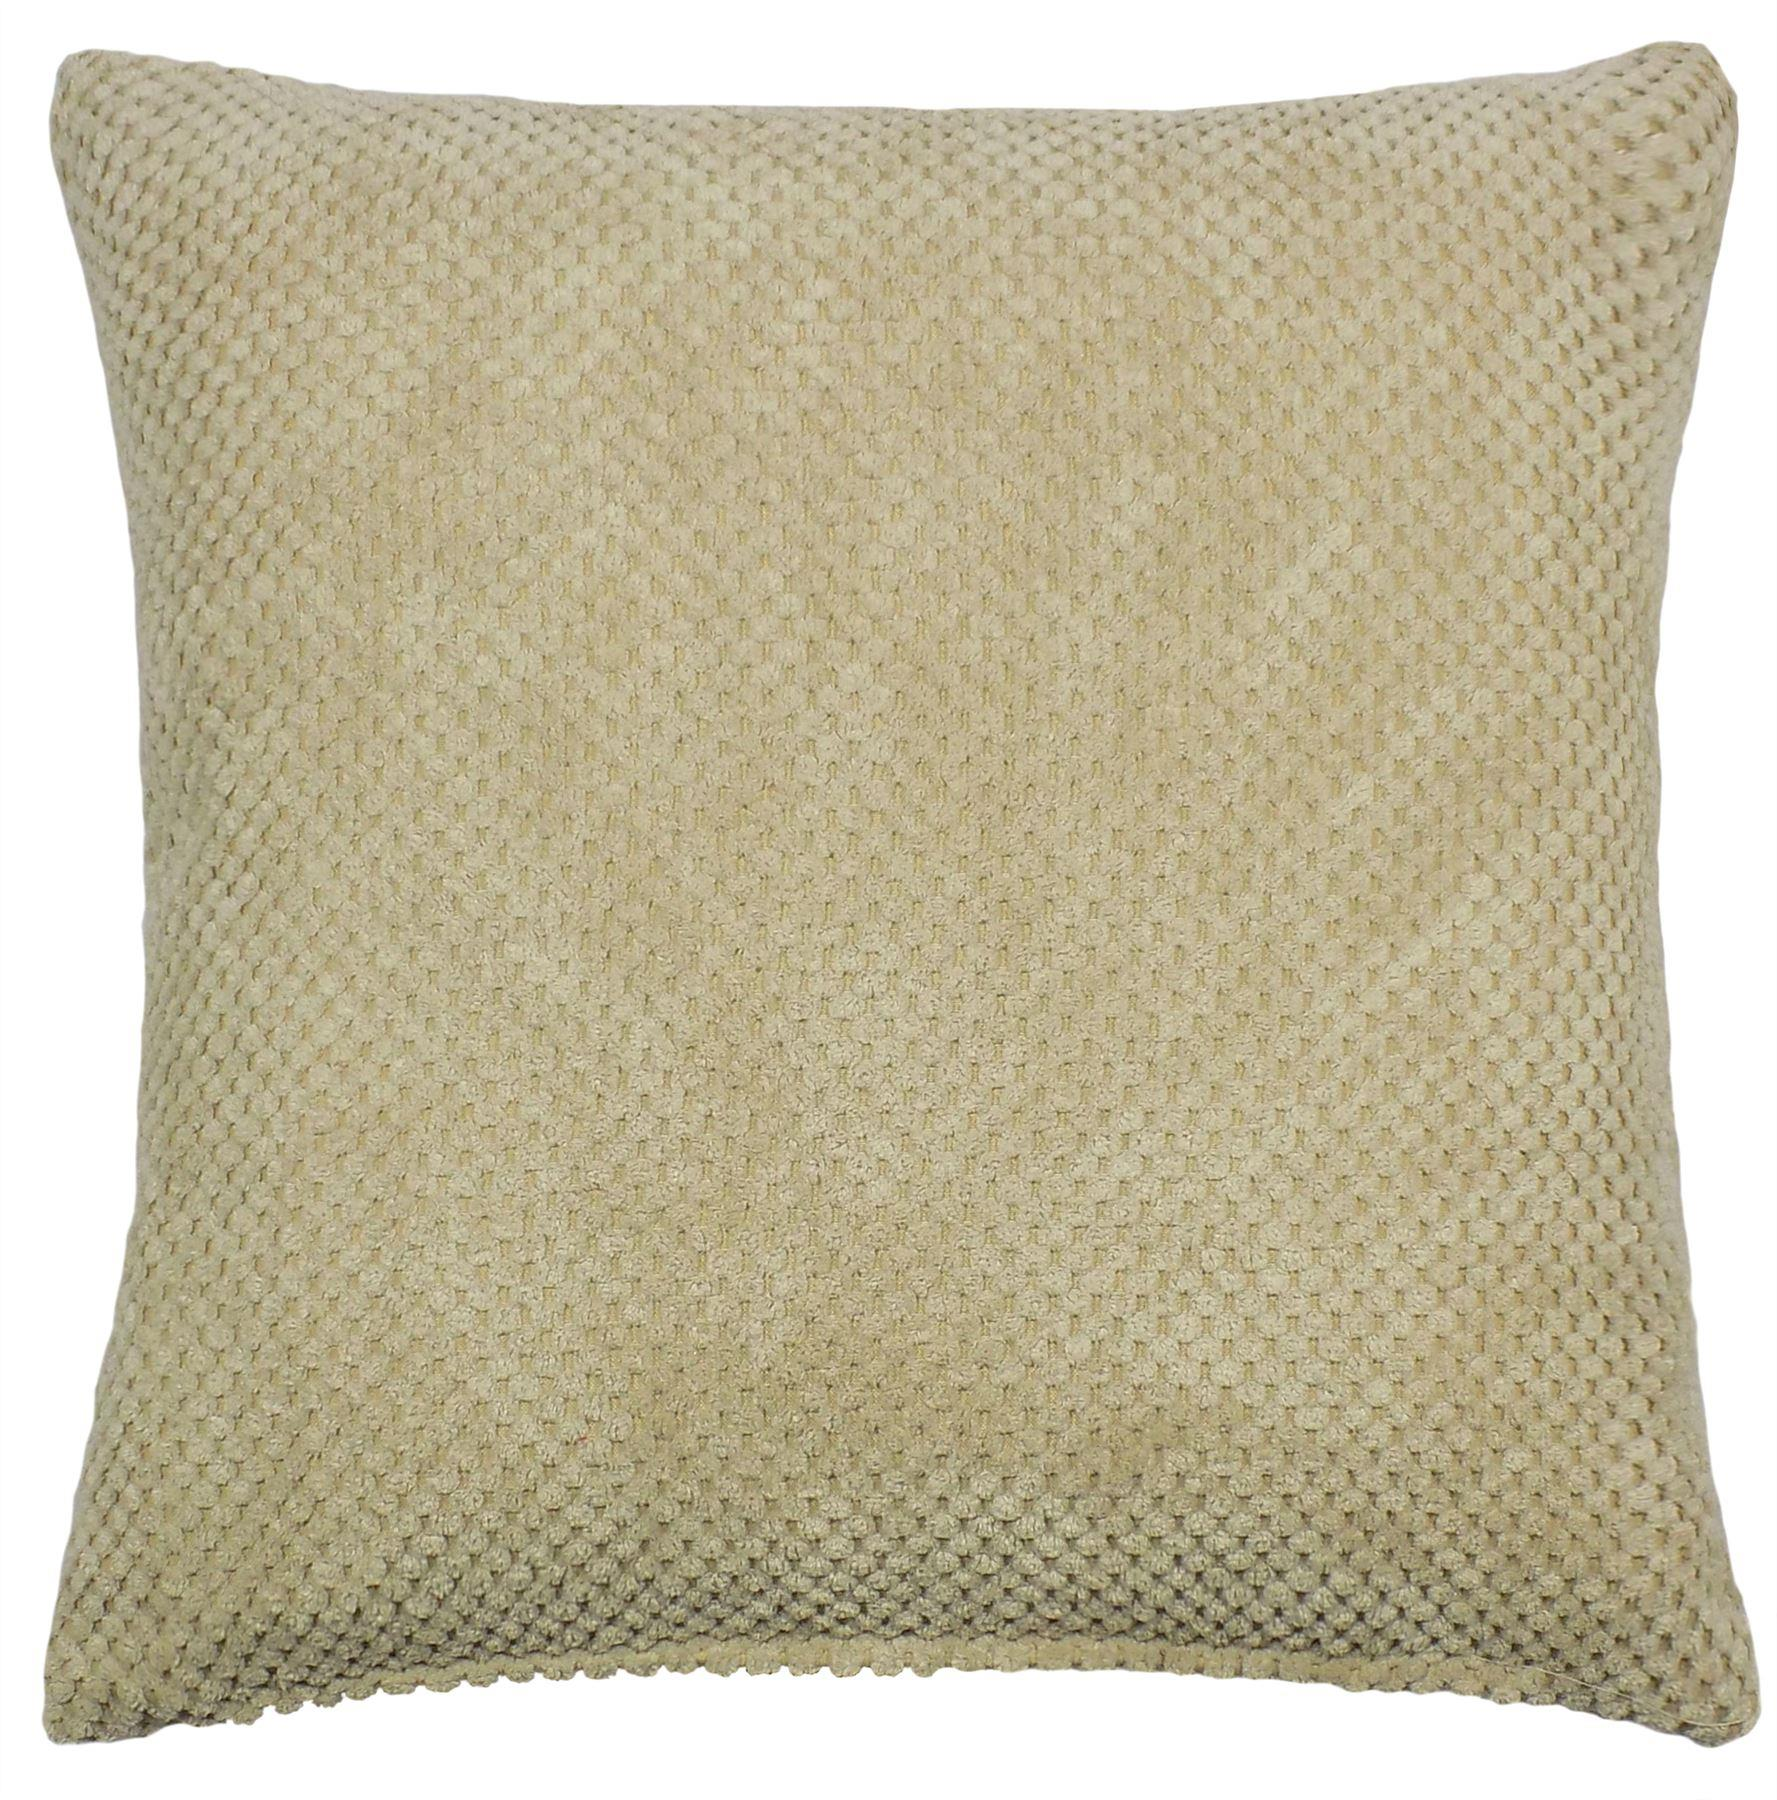 """Thick Chenille Geometric Cushion Covers 17/"""" 43 cm SALE PRICE RRP £7"""